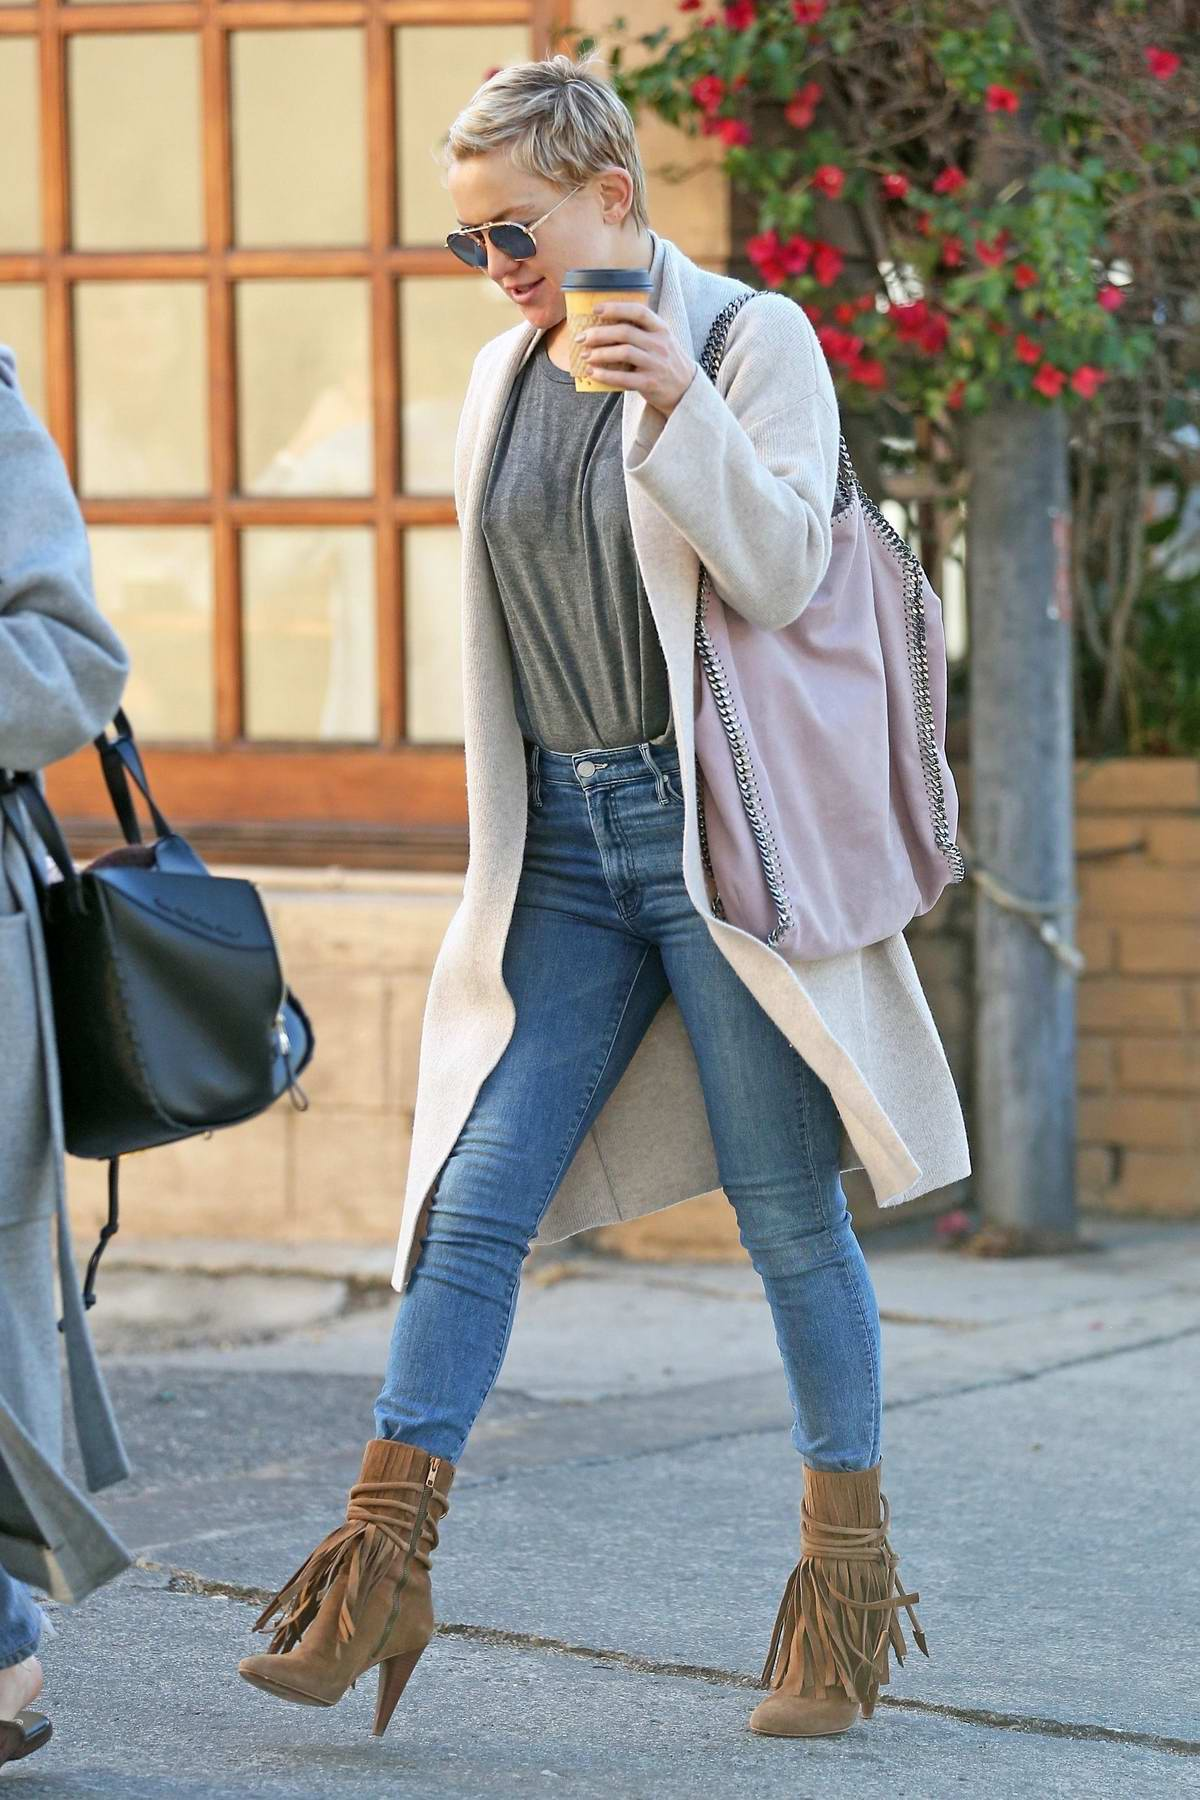 Kate Hudson enjoys a coffee while shopping with a friend in Los Angeles